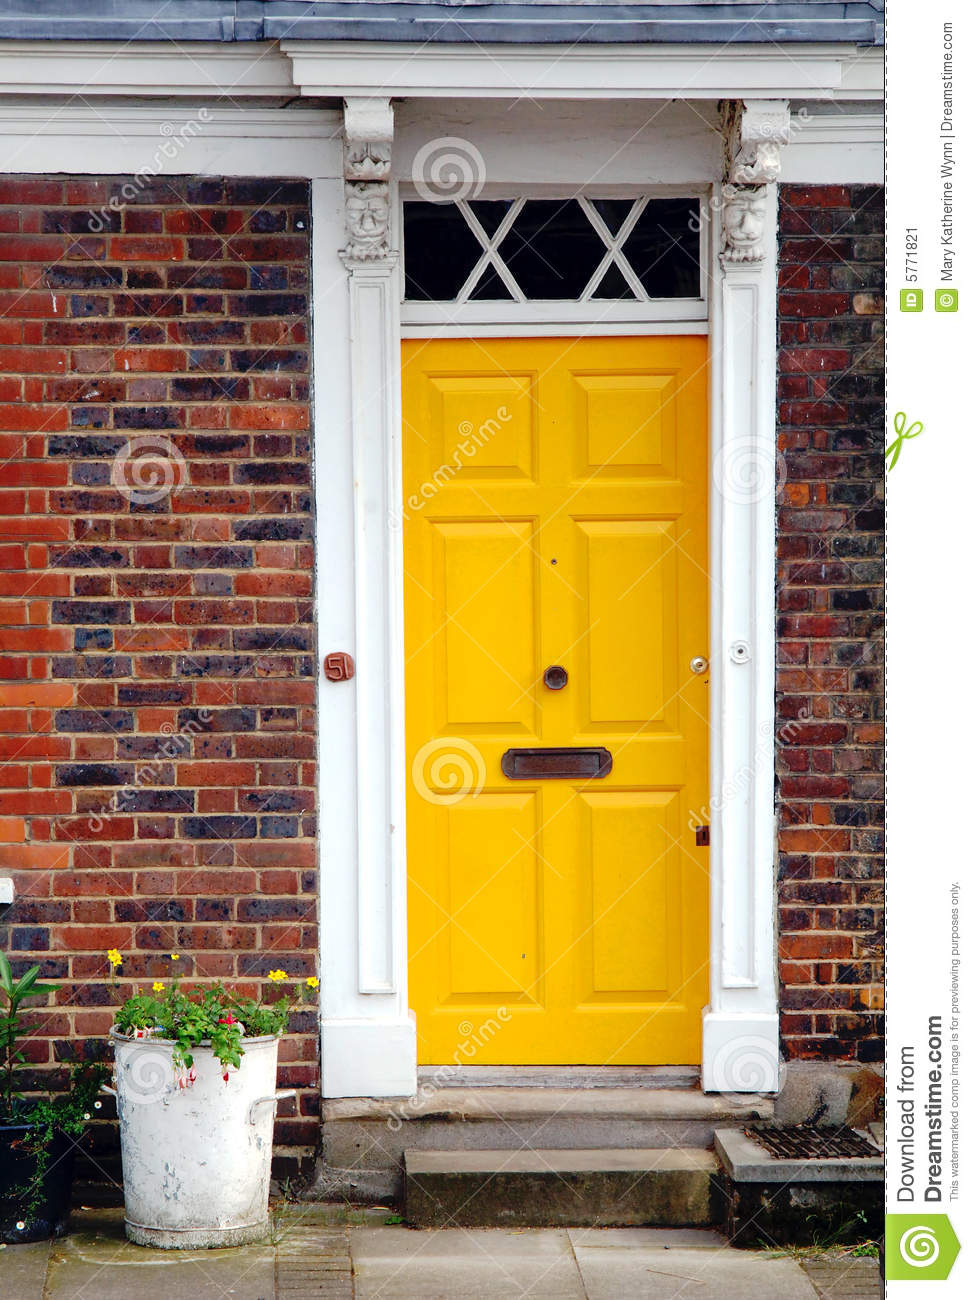 Yellow Door Stock Image Image Of Architectural Outdoors